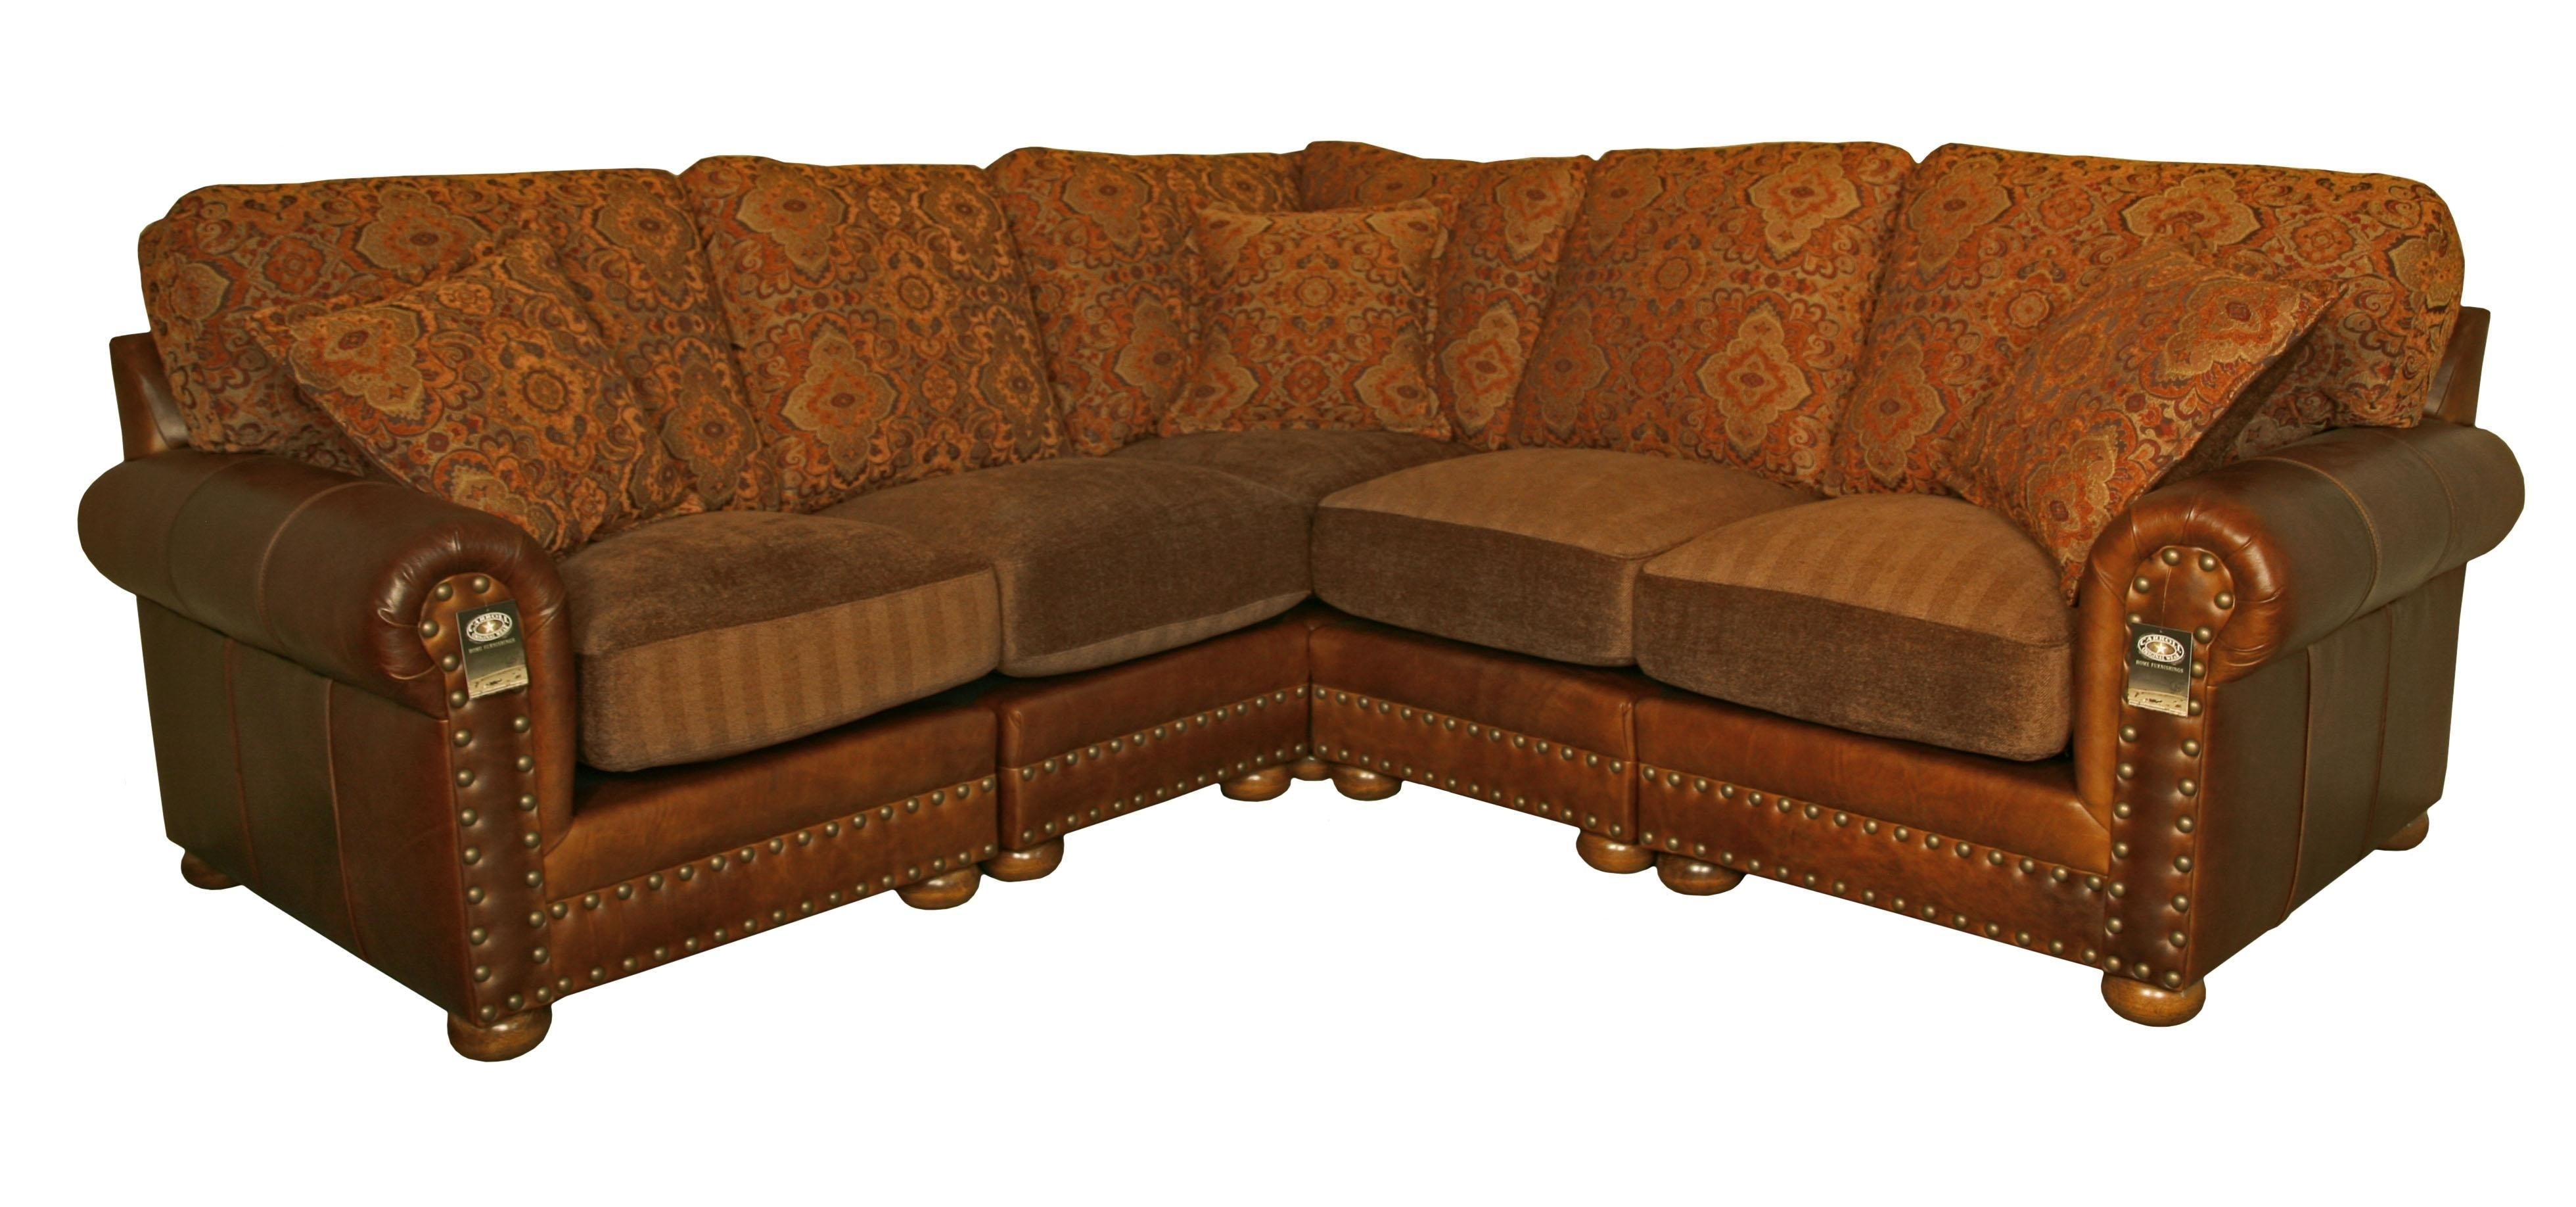 Leather And Cloth Couches | Hinsdale Sectional Sofa Weston Pecan Intended For Leather And Cloth Sofas (View 9 of 10)